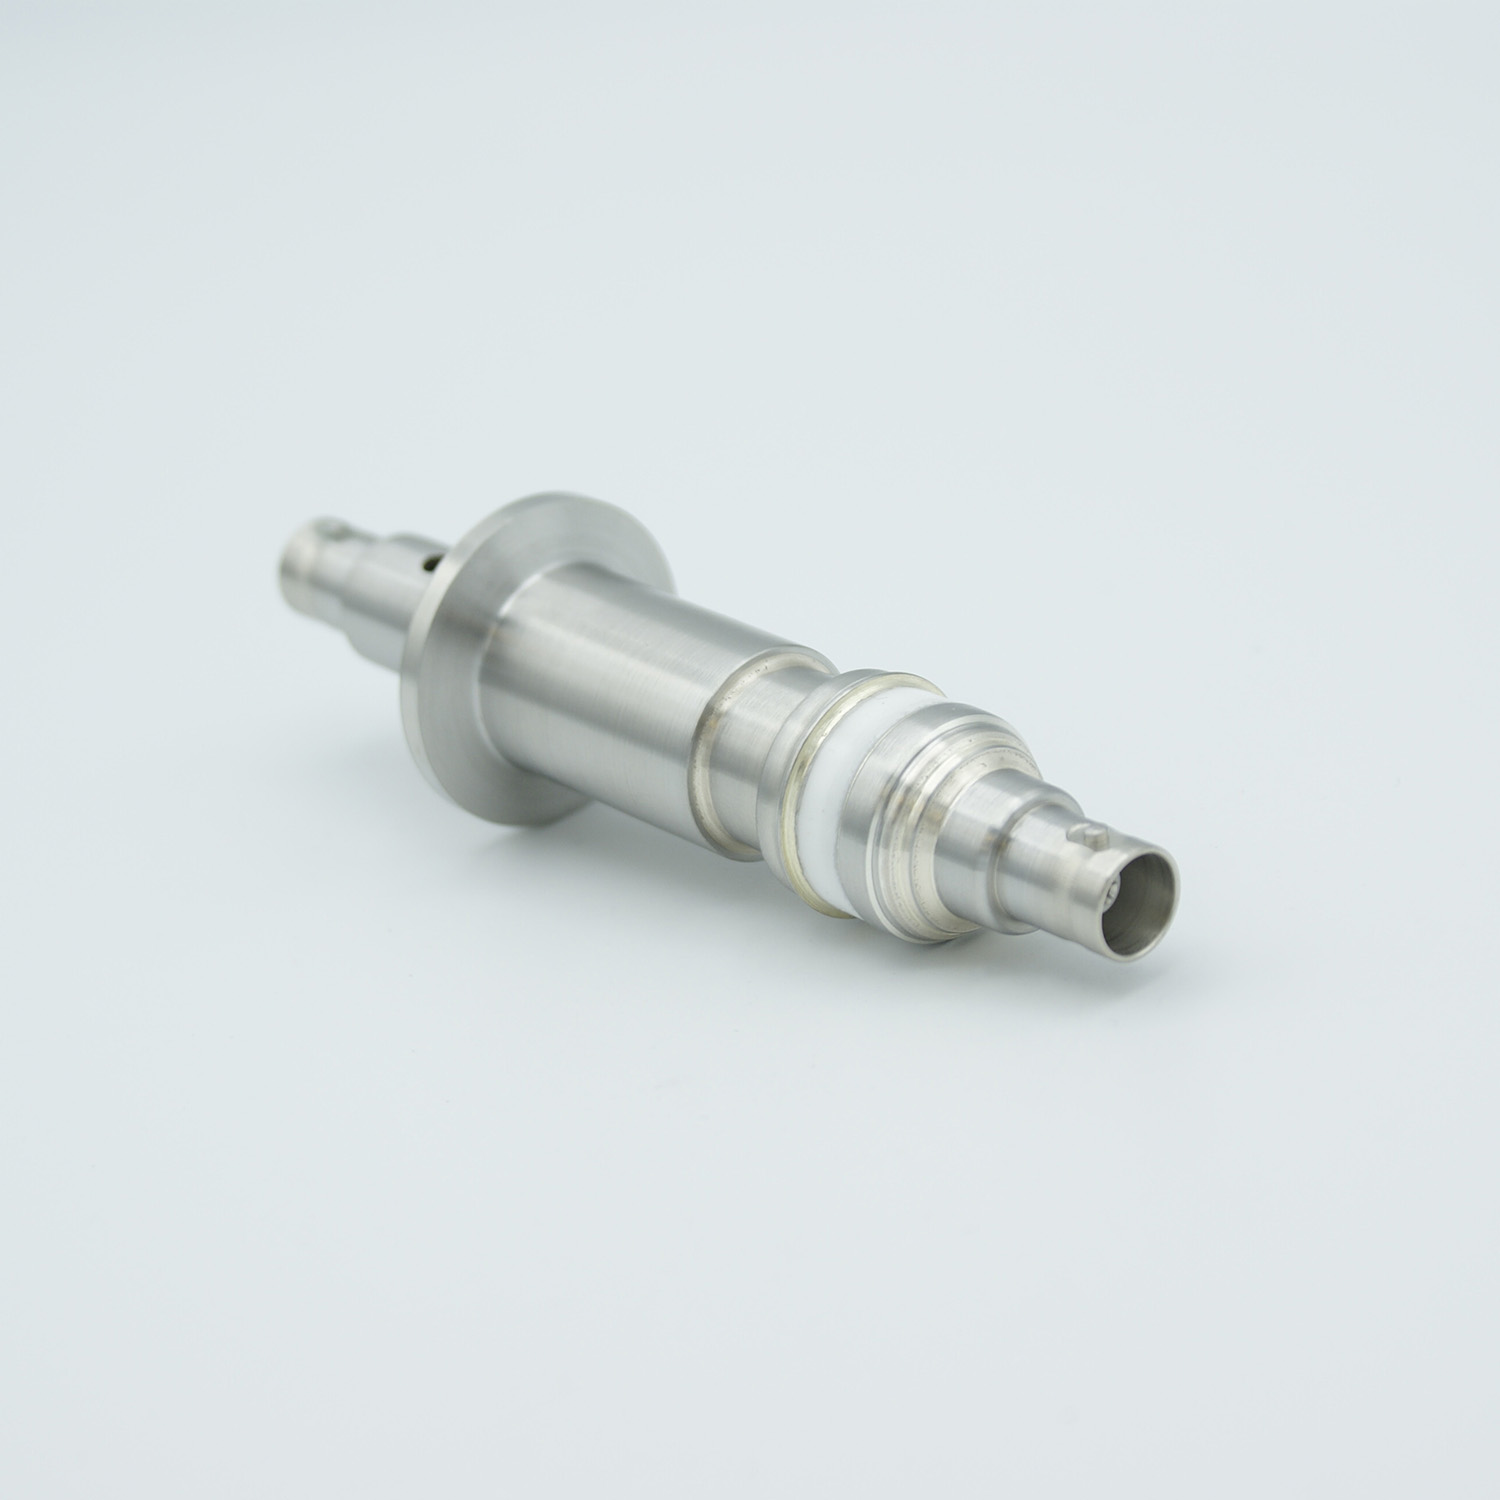 Floating shield double ended MHV feedthrough, DN16KF without air side connector